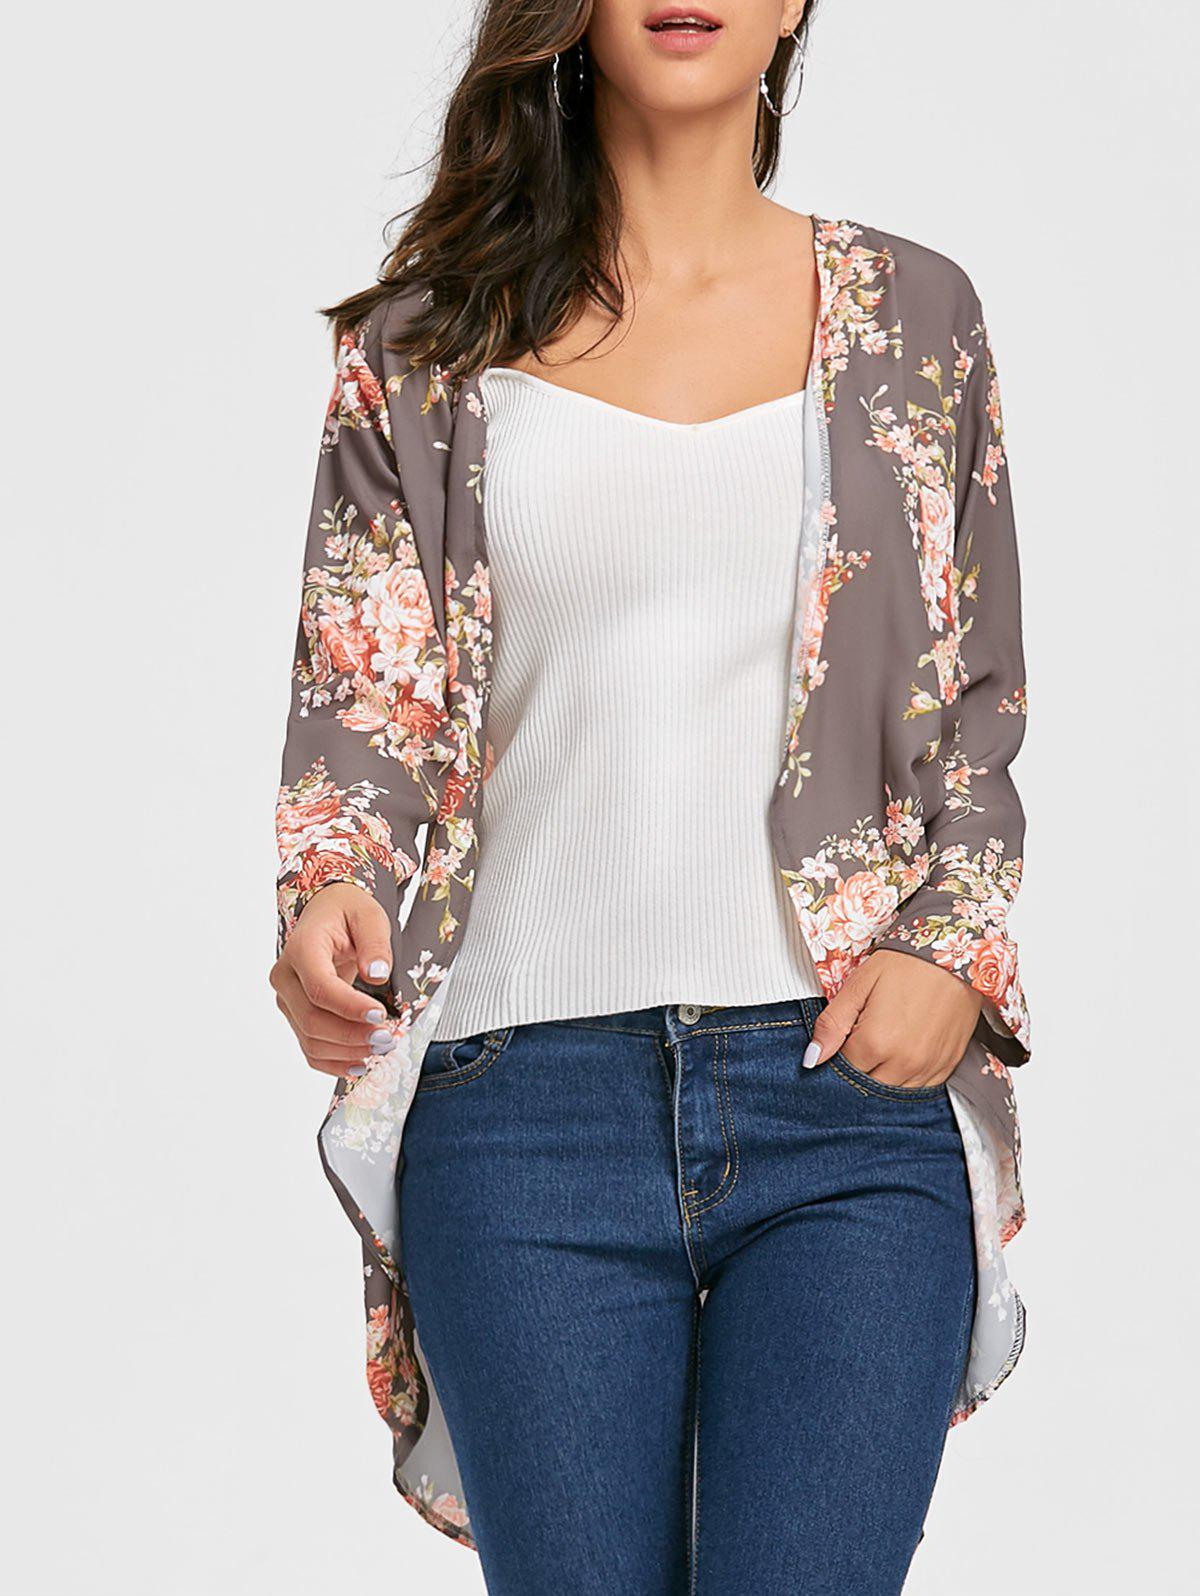 Floral Open Front Chiffon CardiganWOMEN<br><br>Size: M; Color: GRAY; Type: Cardigans; Material: Polyester; Sleeve Length: Three Quarter; Collar: Collarless; Style: Fashion; Pattern Type: Floral; Season: Fall,Spring; Weight: 0.2700kg; Package Contents: 1 x Cardigan;